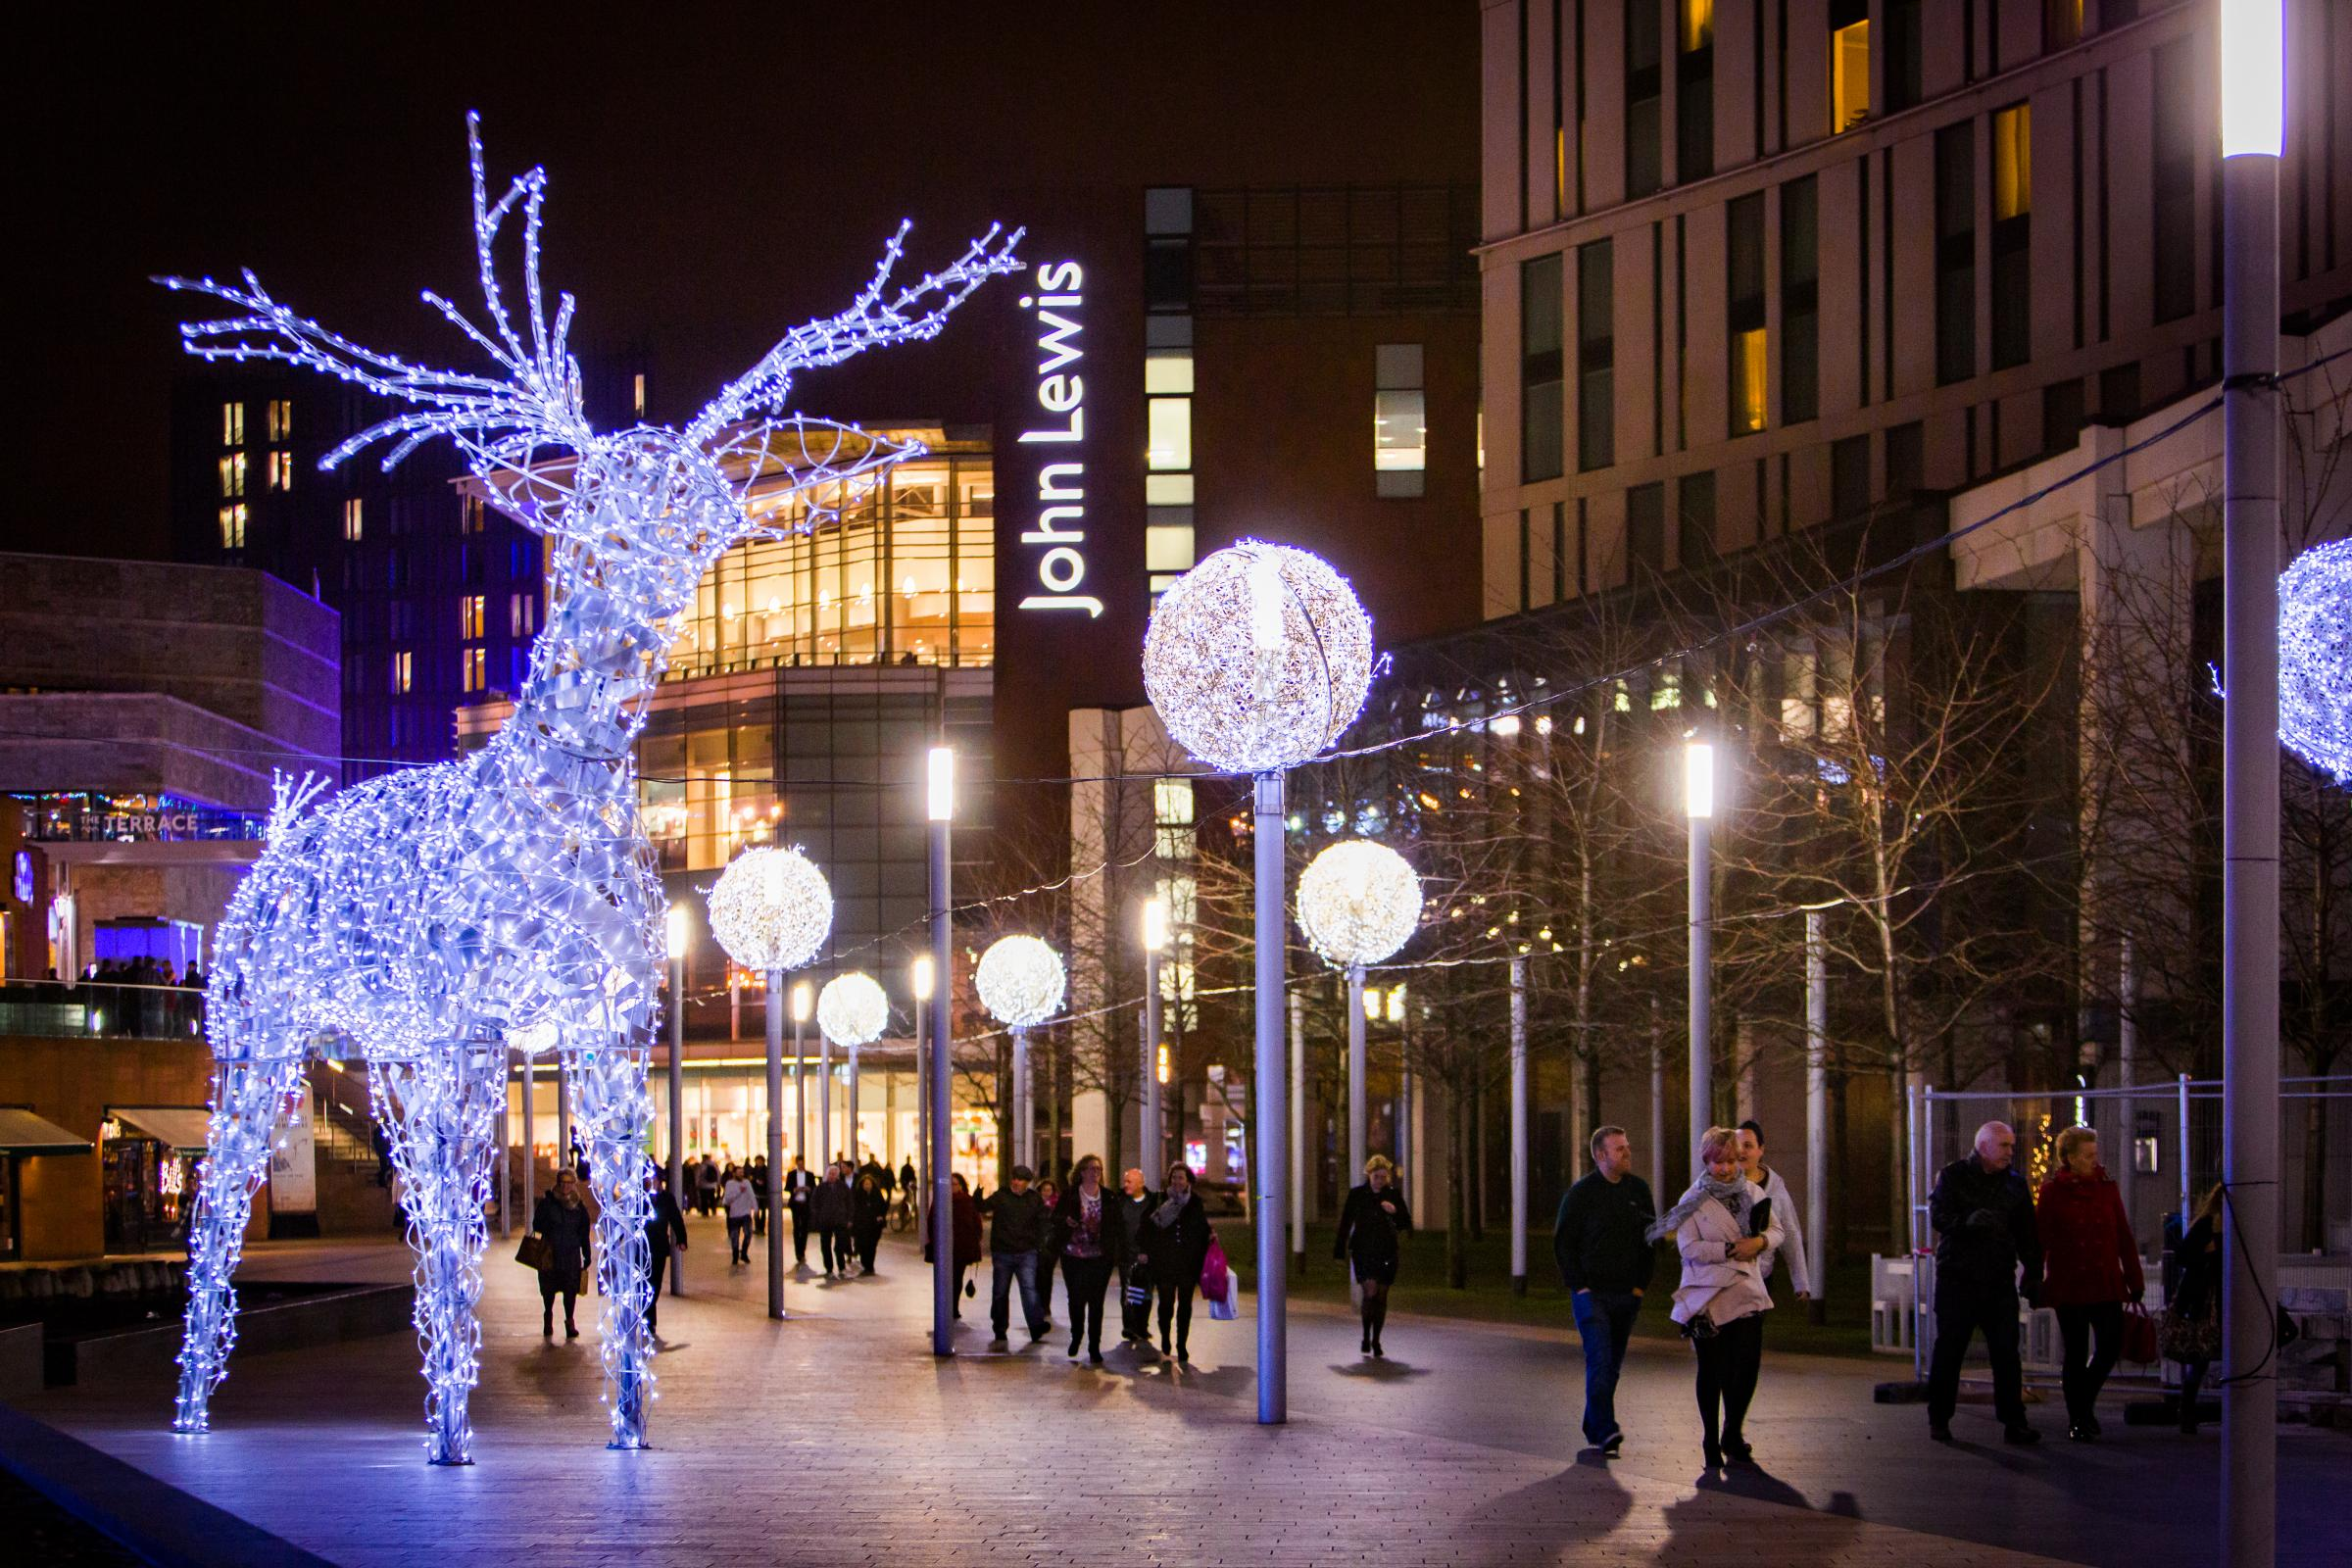 Lights, Entertainment, Choirs – And ONE Impressive Festive Street Party